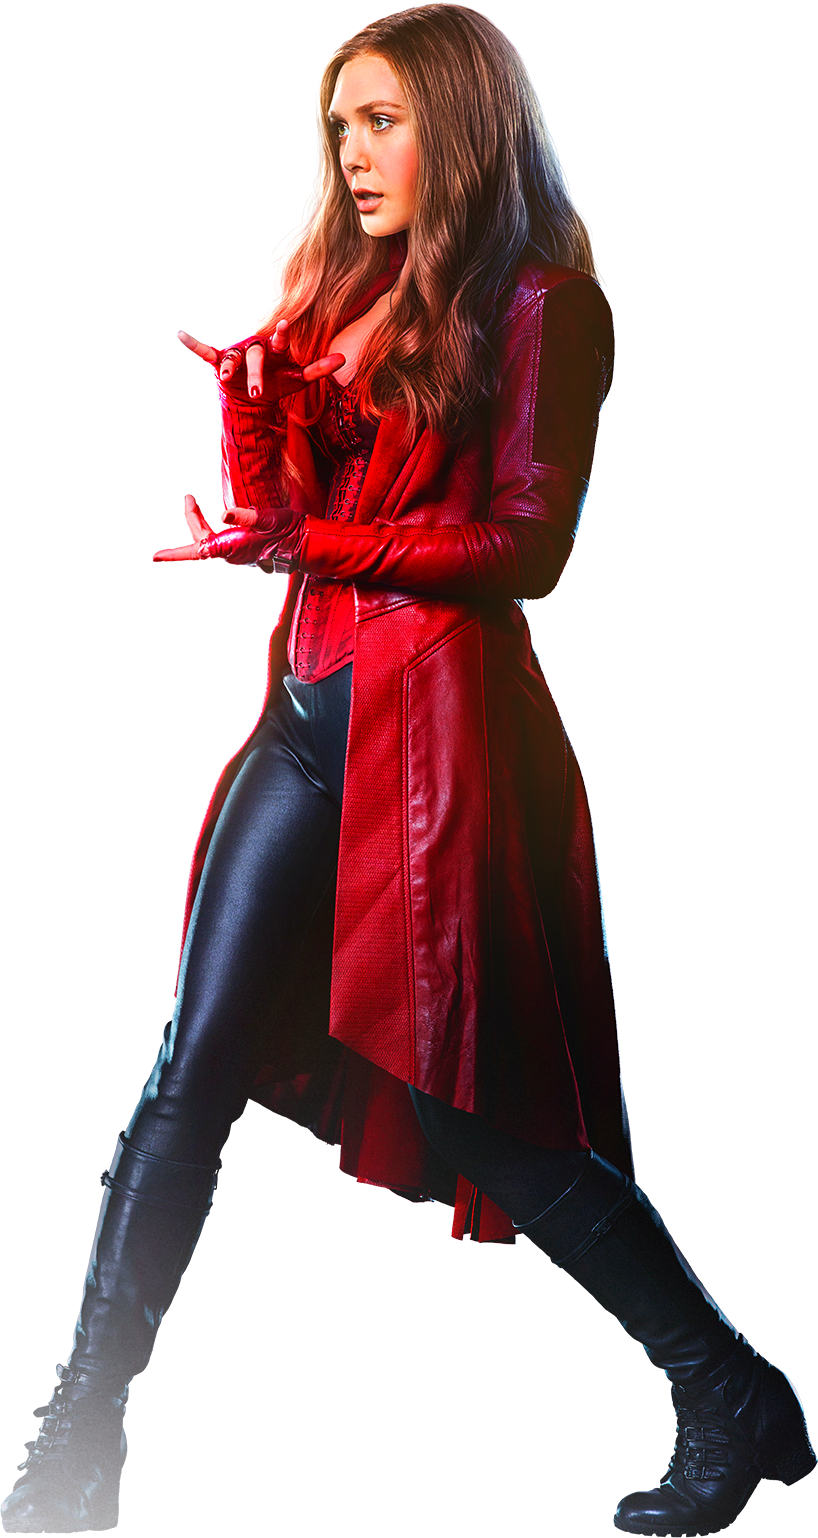 Scarlet Witch 3 by alexiscabo1 on DeviantArt